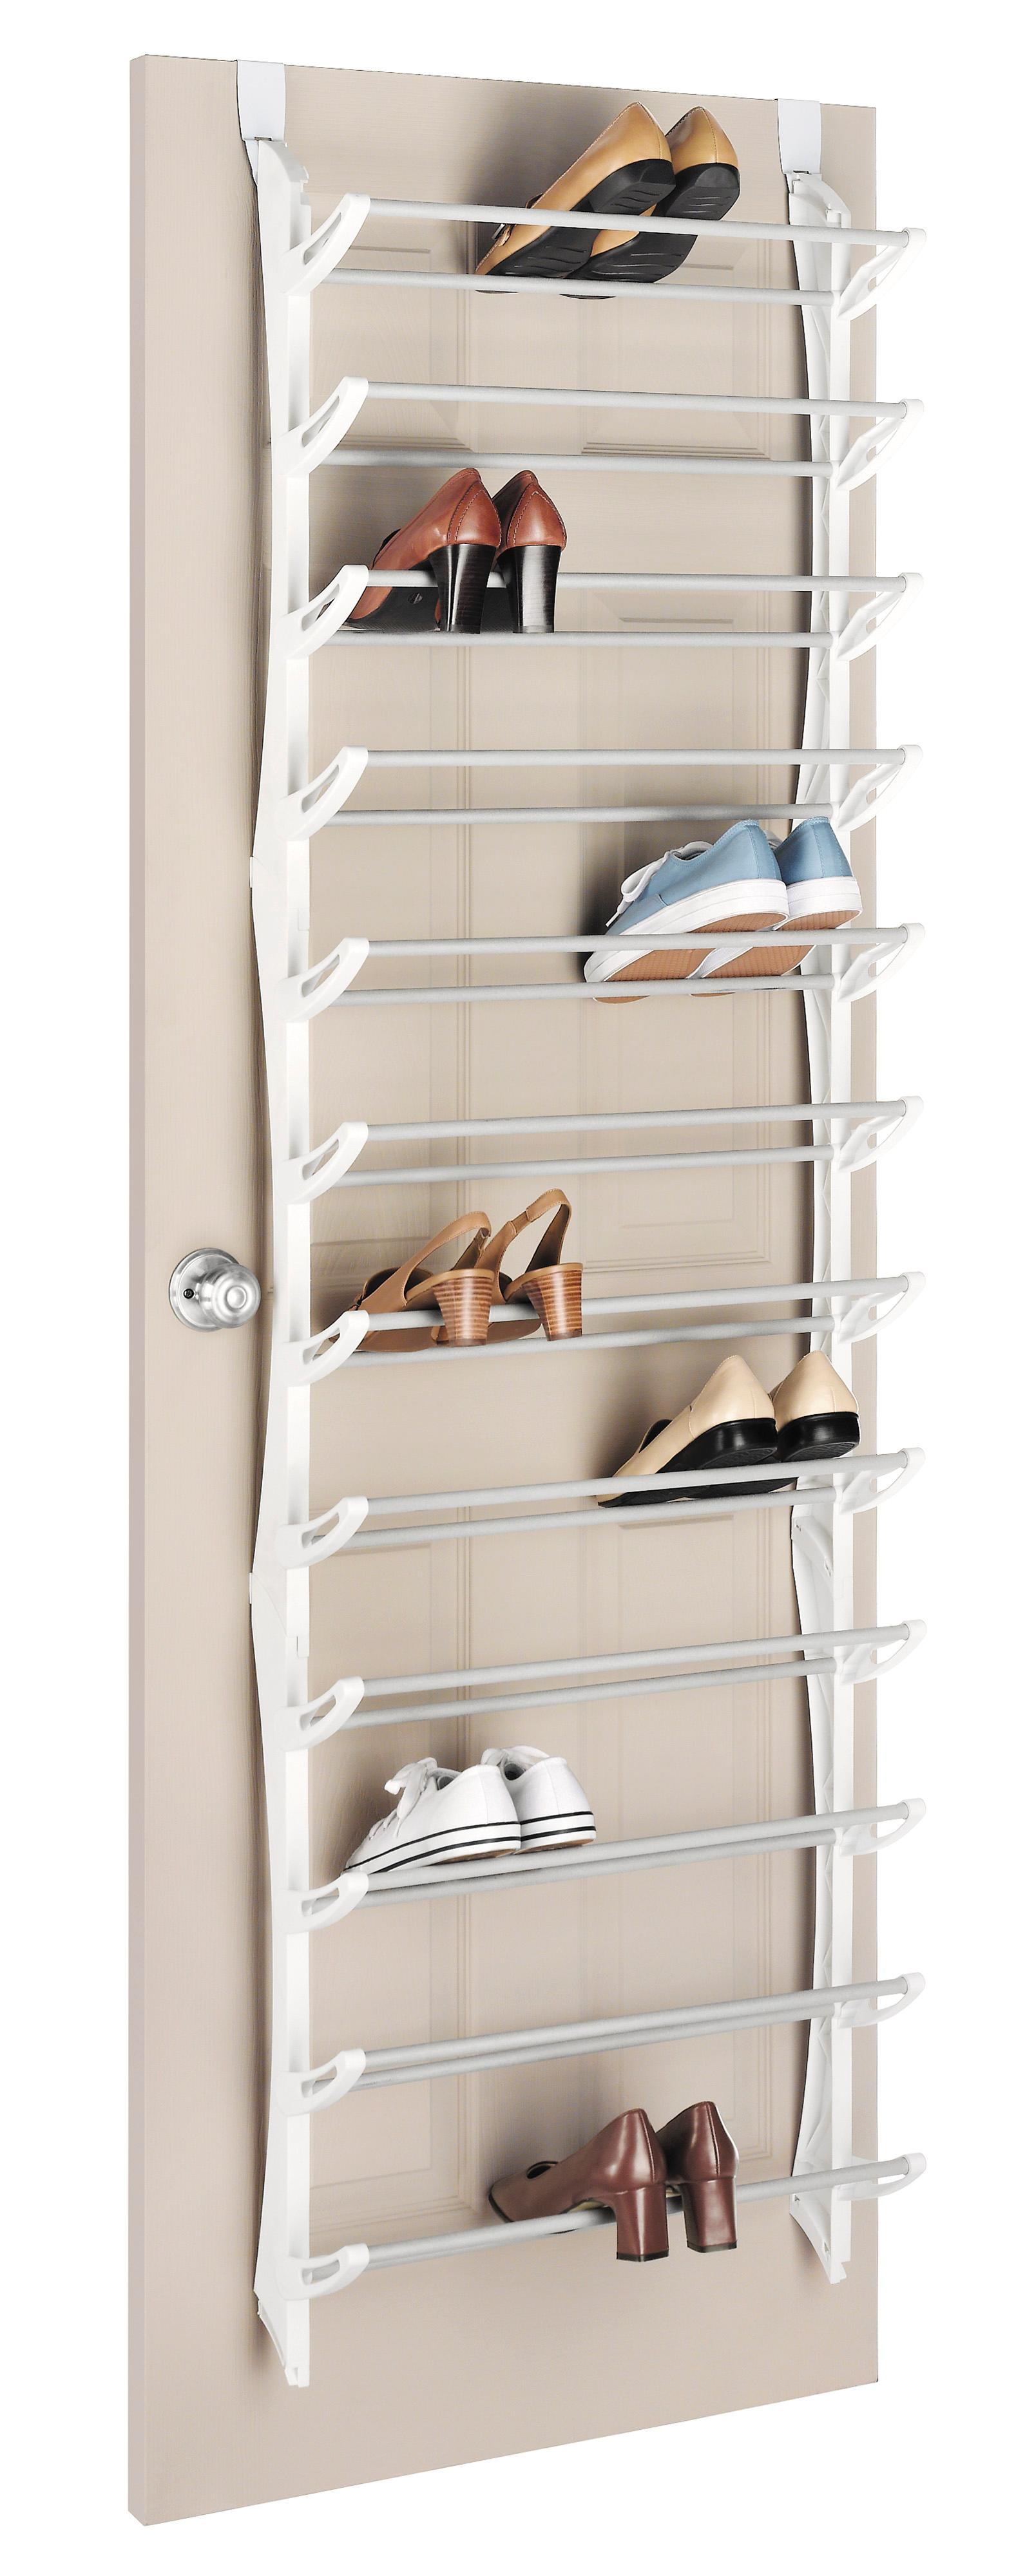 View larger for Door shoe organizer